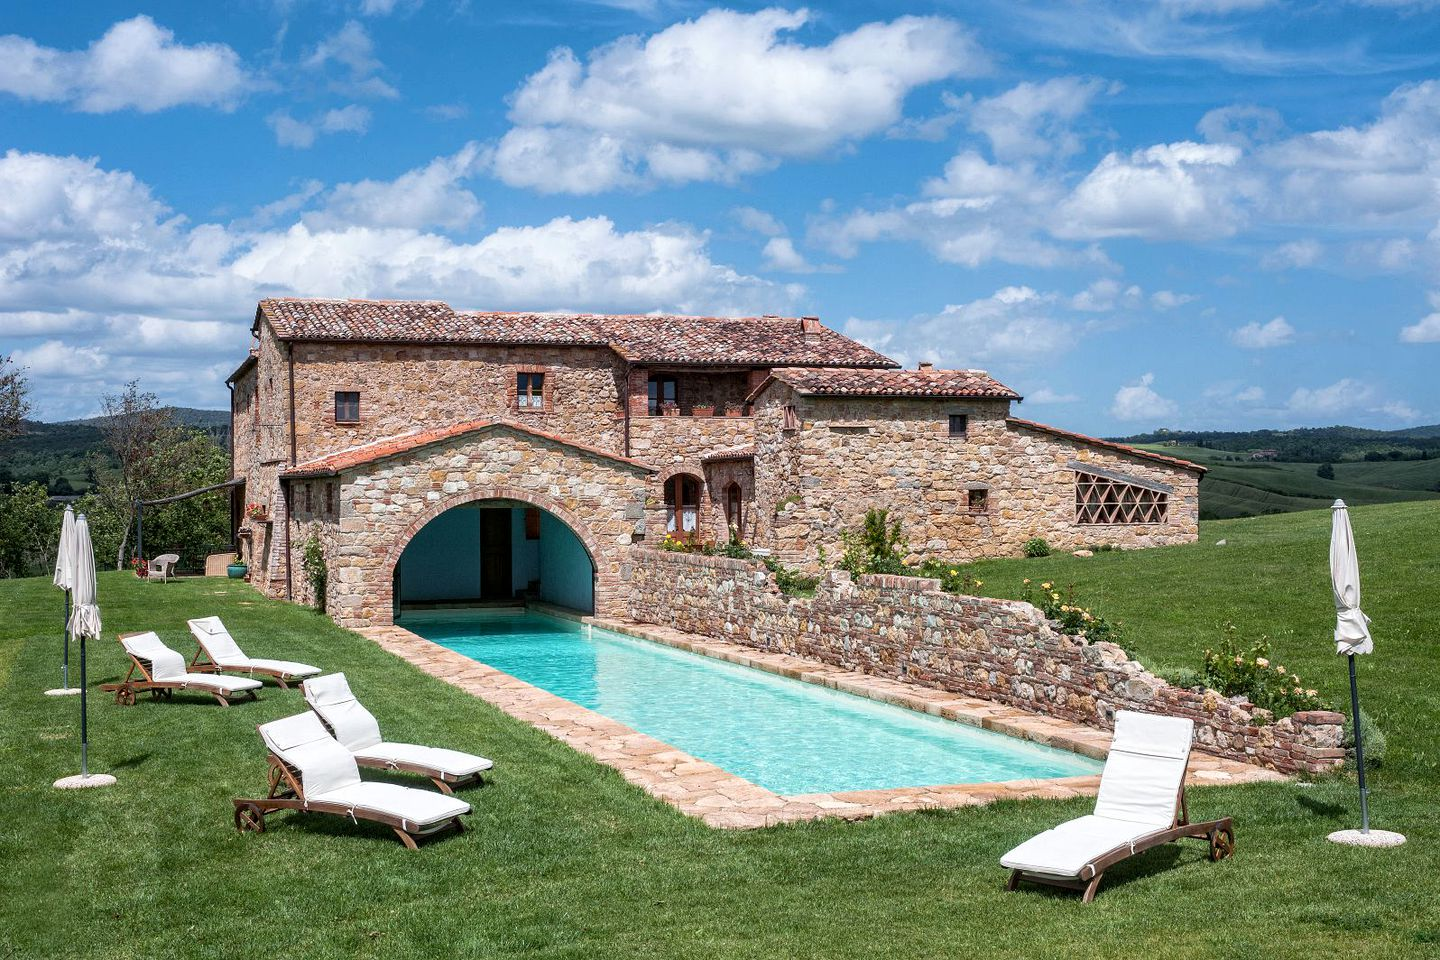 Villas Near Siena Italy idyllic villa rental with a swimming pool in the countryside of pienza,  tuscany